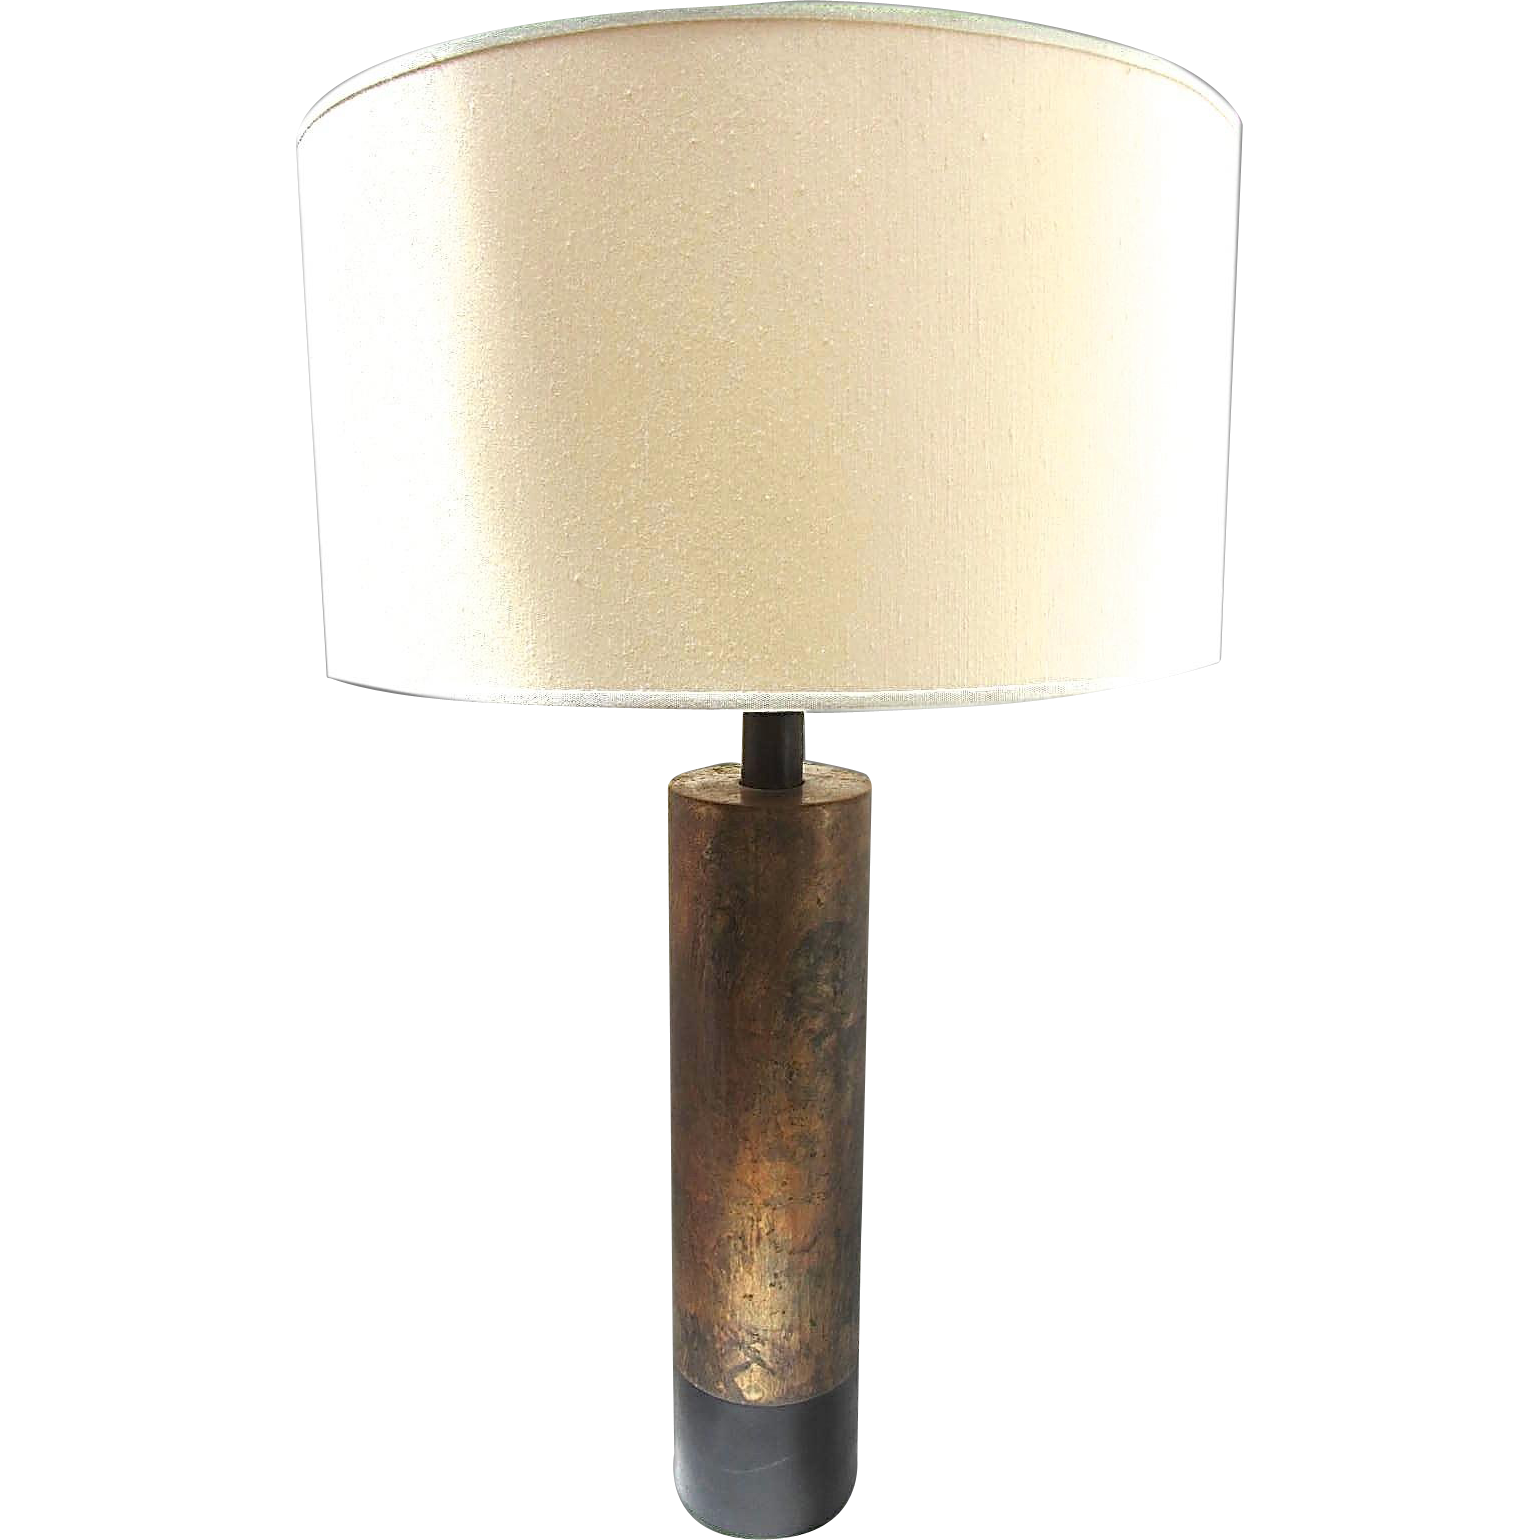 33 tall mid century modern cylinder lamp. Black Bedroom Furniture Sets. Home Design Ideas